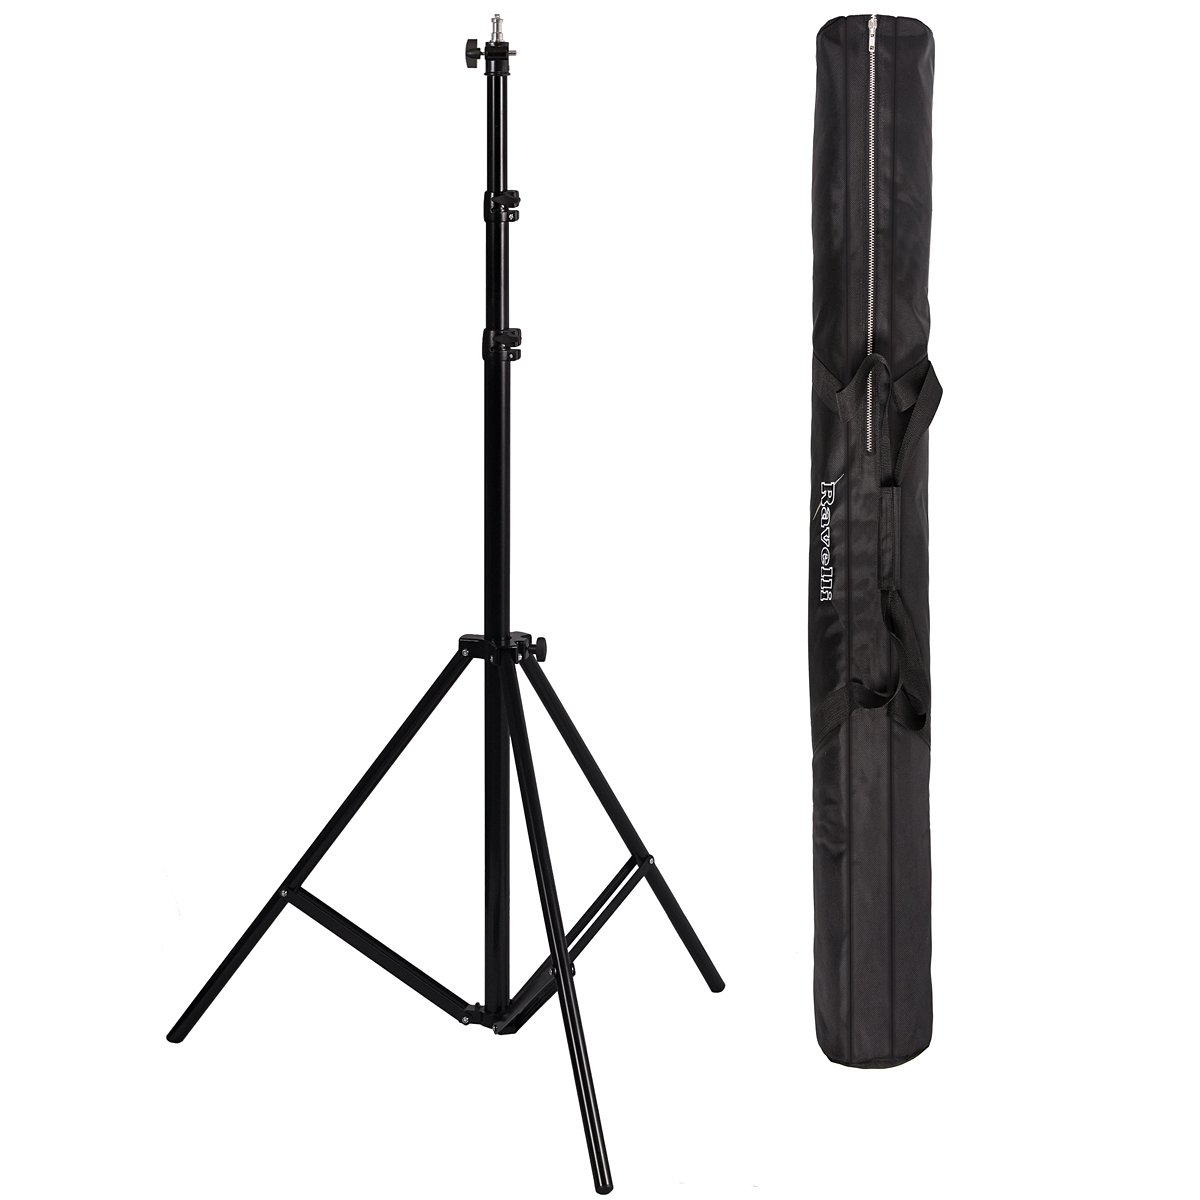 Ravelli ALS Full 10' Air Cushioned Light Stand With Included Adaptor To Also Support 1/4'' and 3/8'' Photo Equipment and Heavy Duty Carry Bag